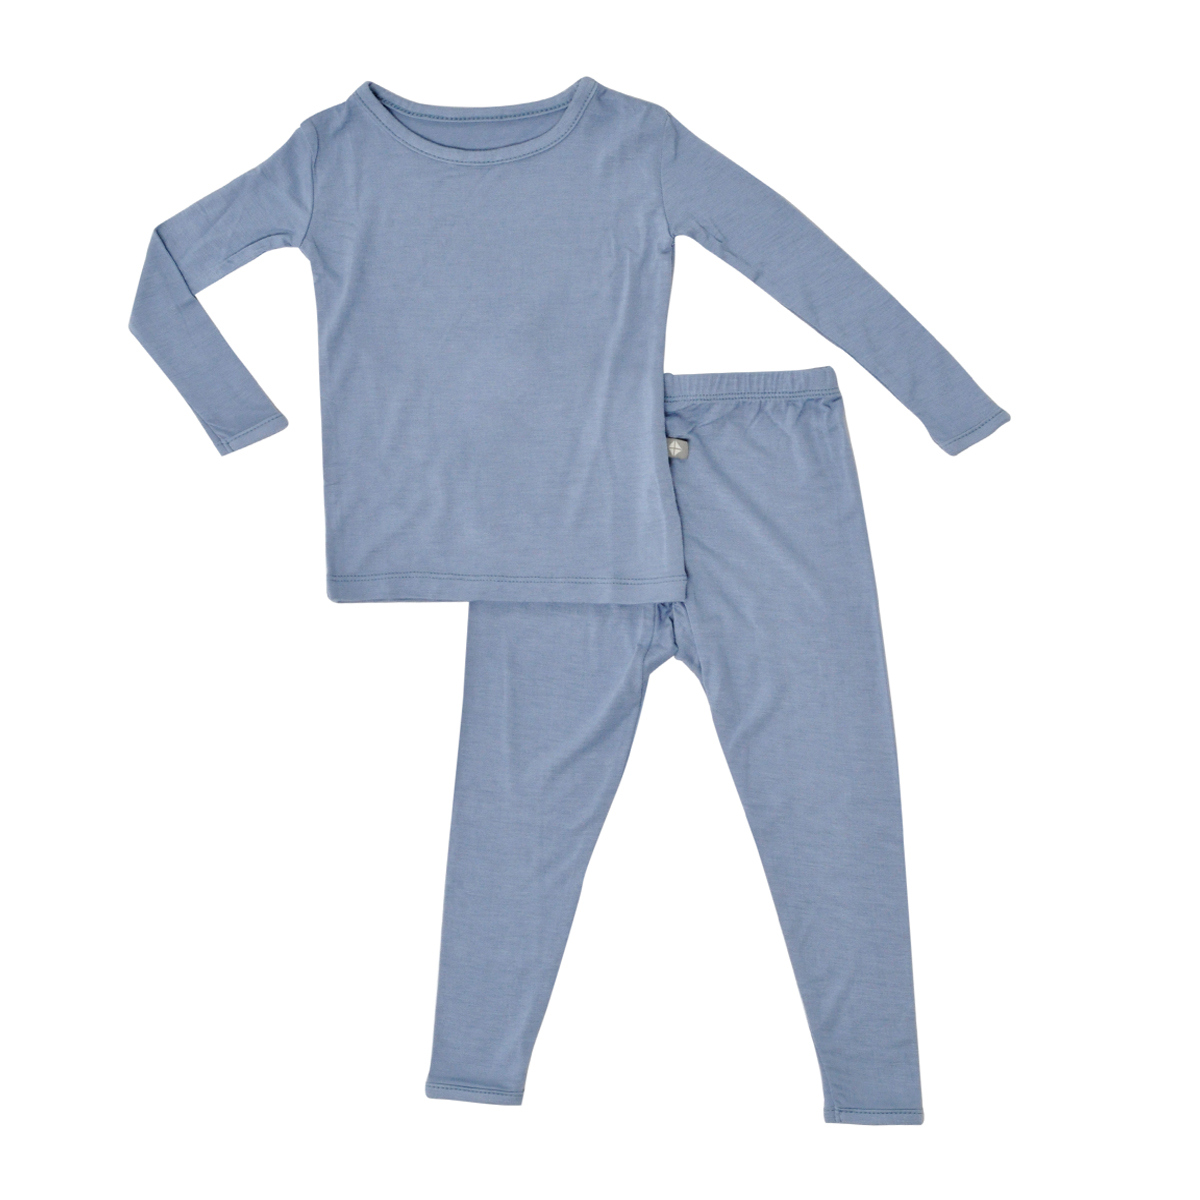 Kyte Baby Bamboo Toddler Pajama Set in Slate